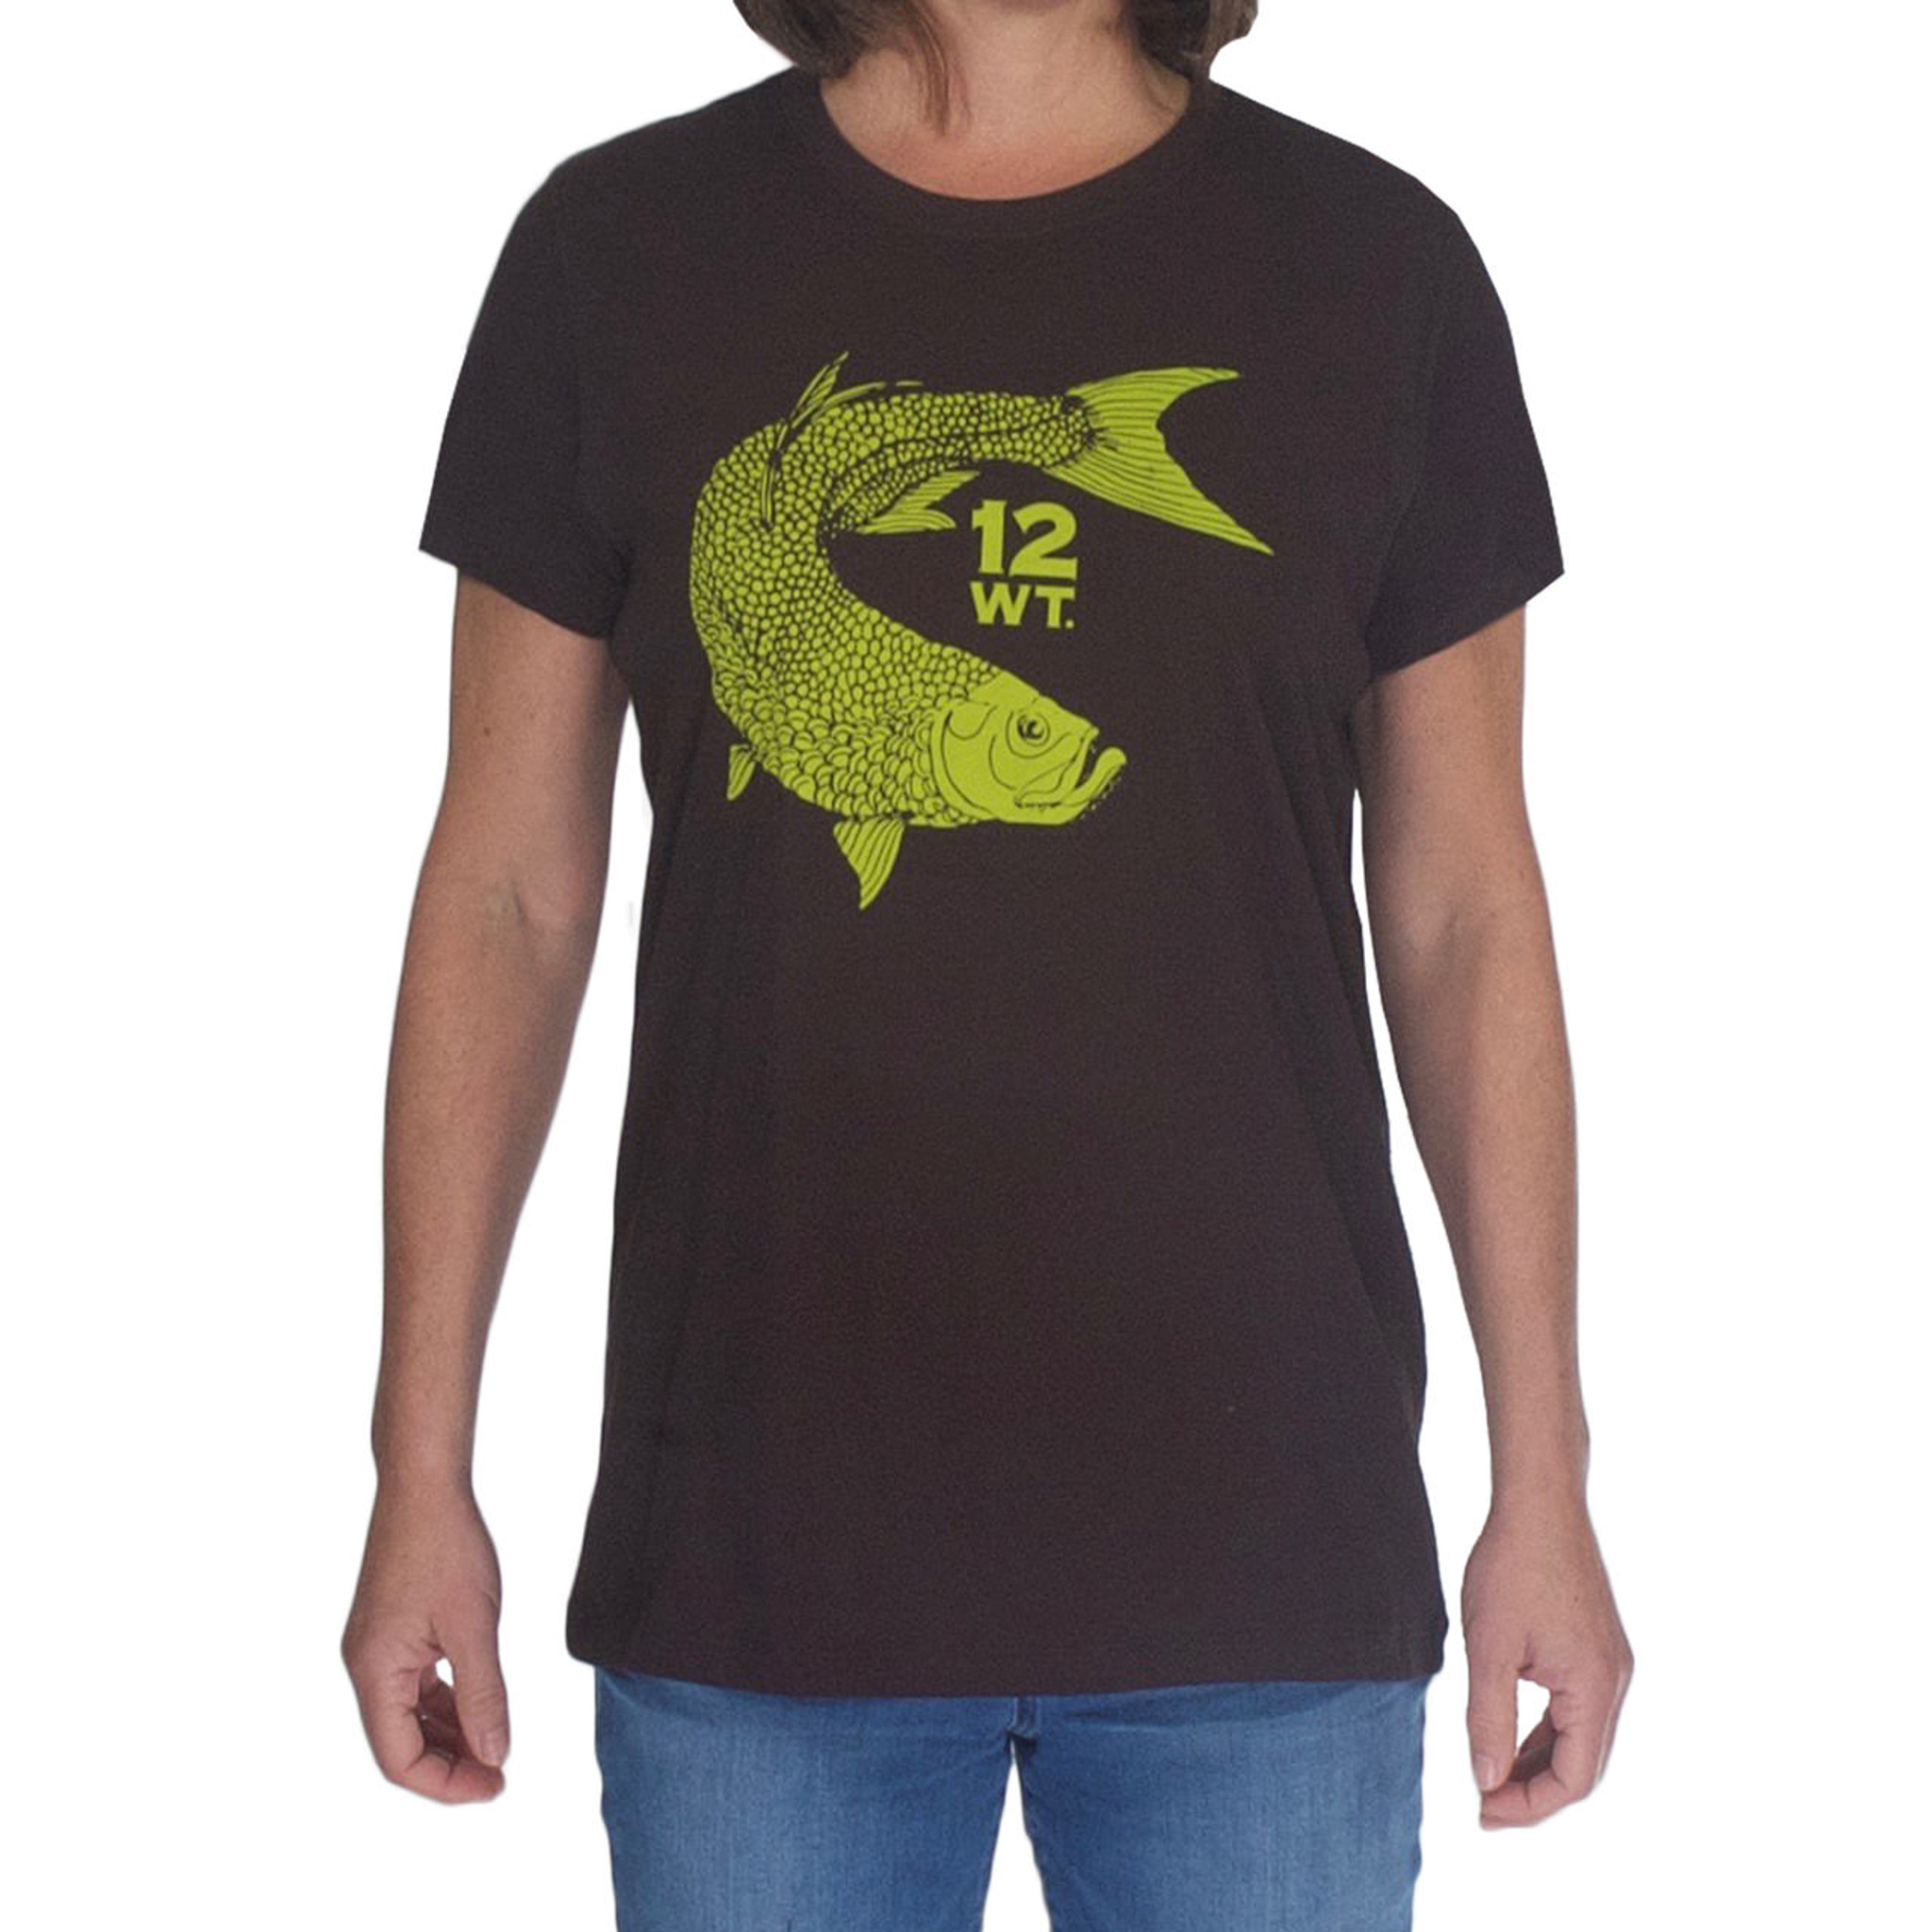 Womens short sleeved t shirt with tarpon logo womens short sleeve t shirt tarpon logo nvjuhfo Images